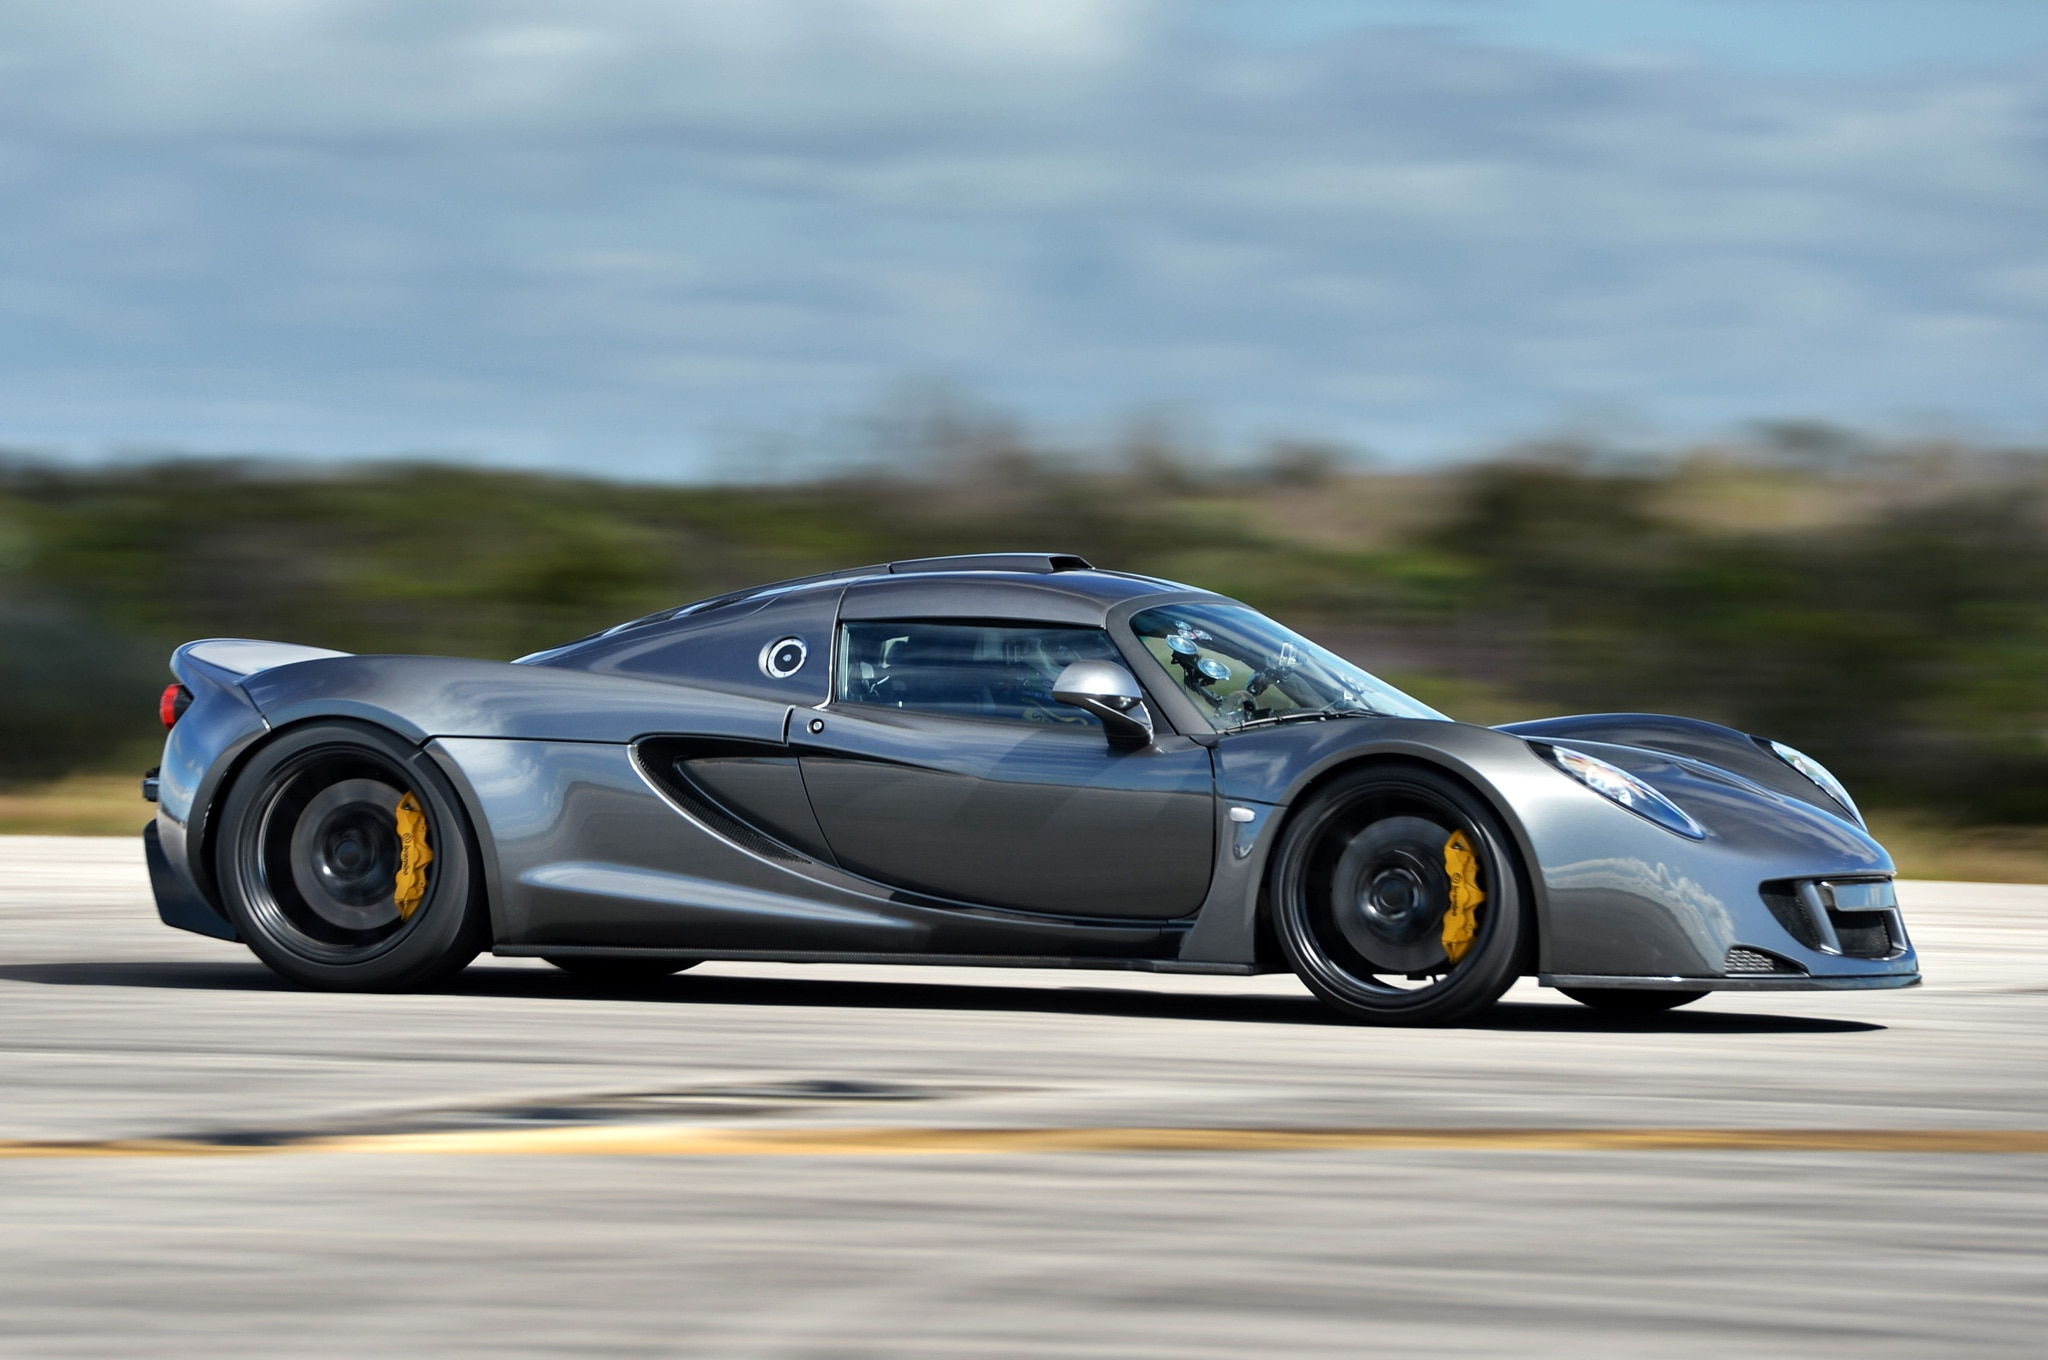 2012 Hennessey Venom GT Owned by Steven Tyler Sells for Charity